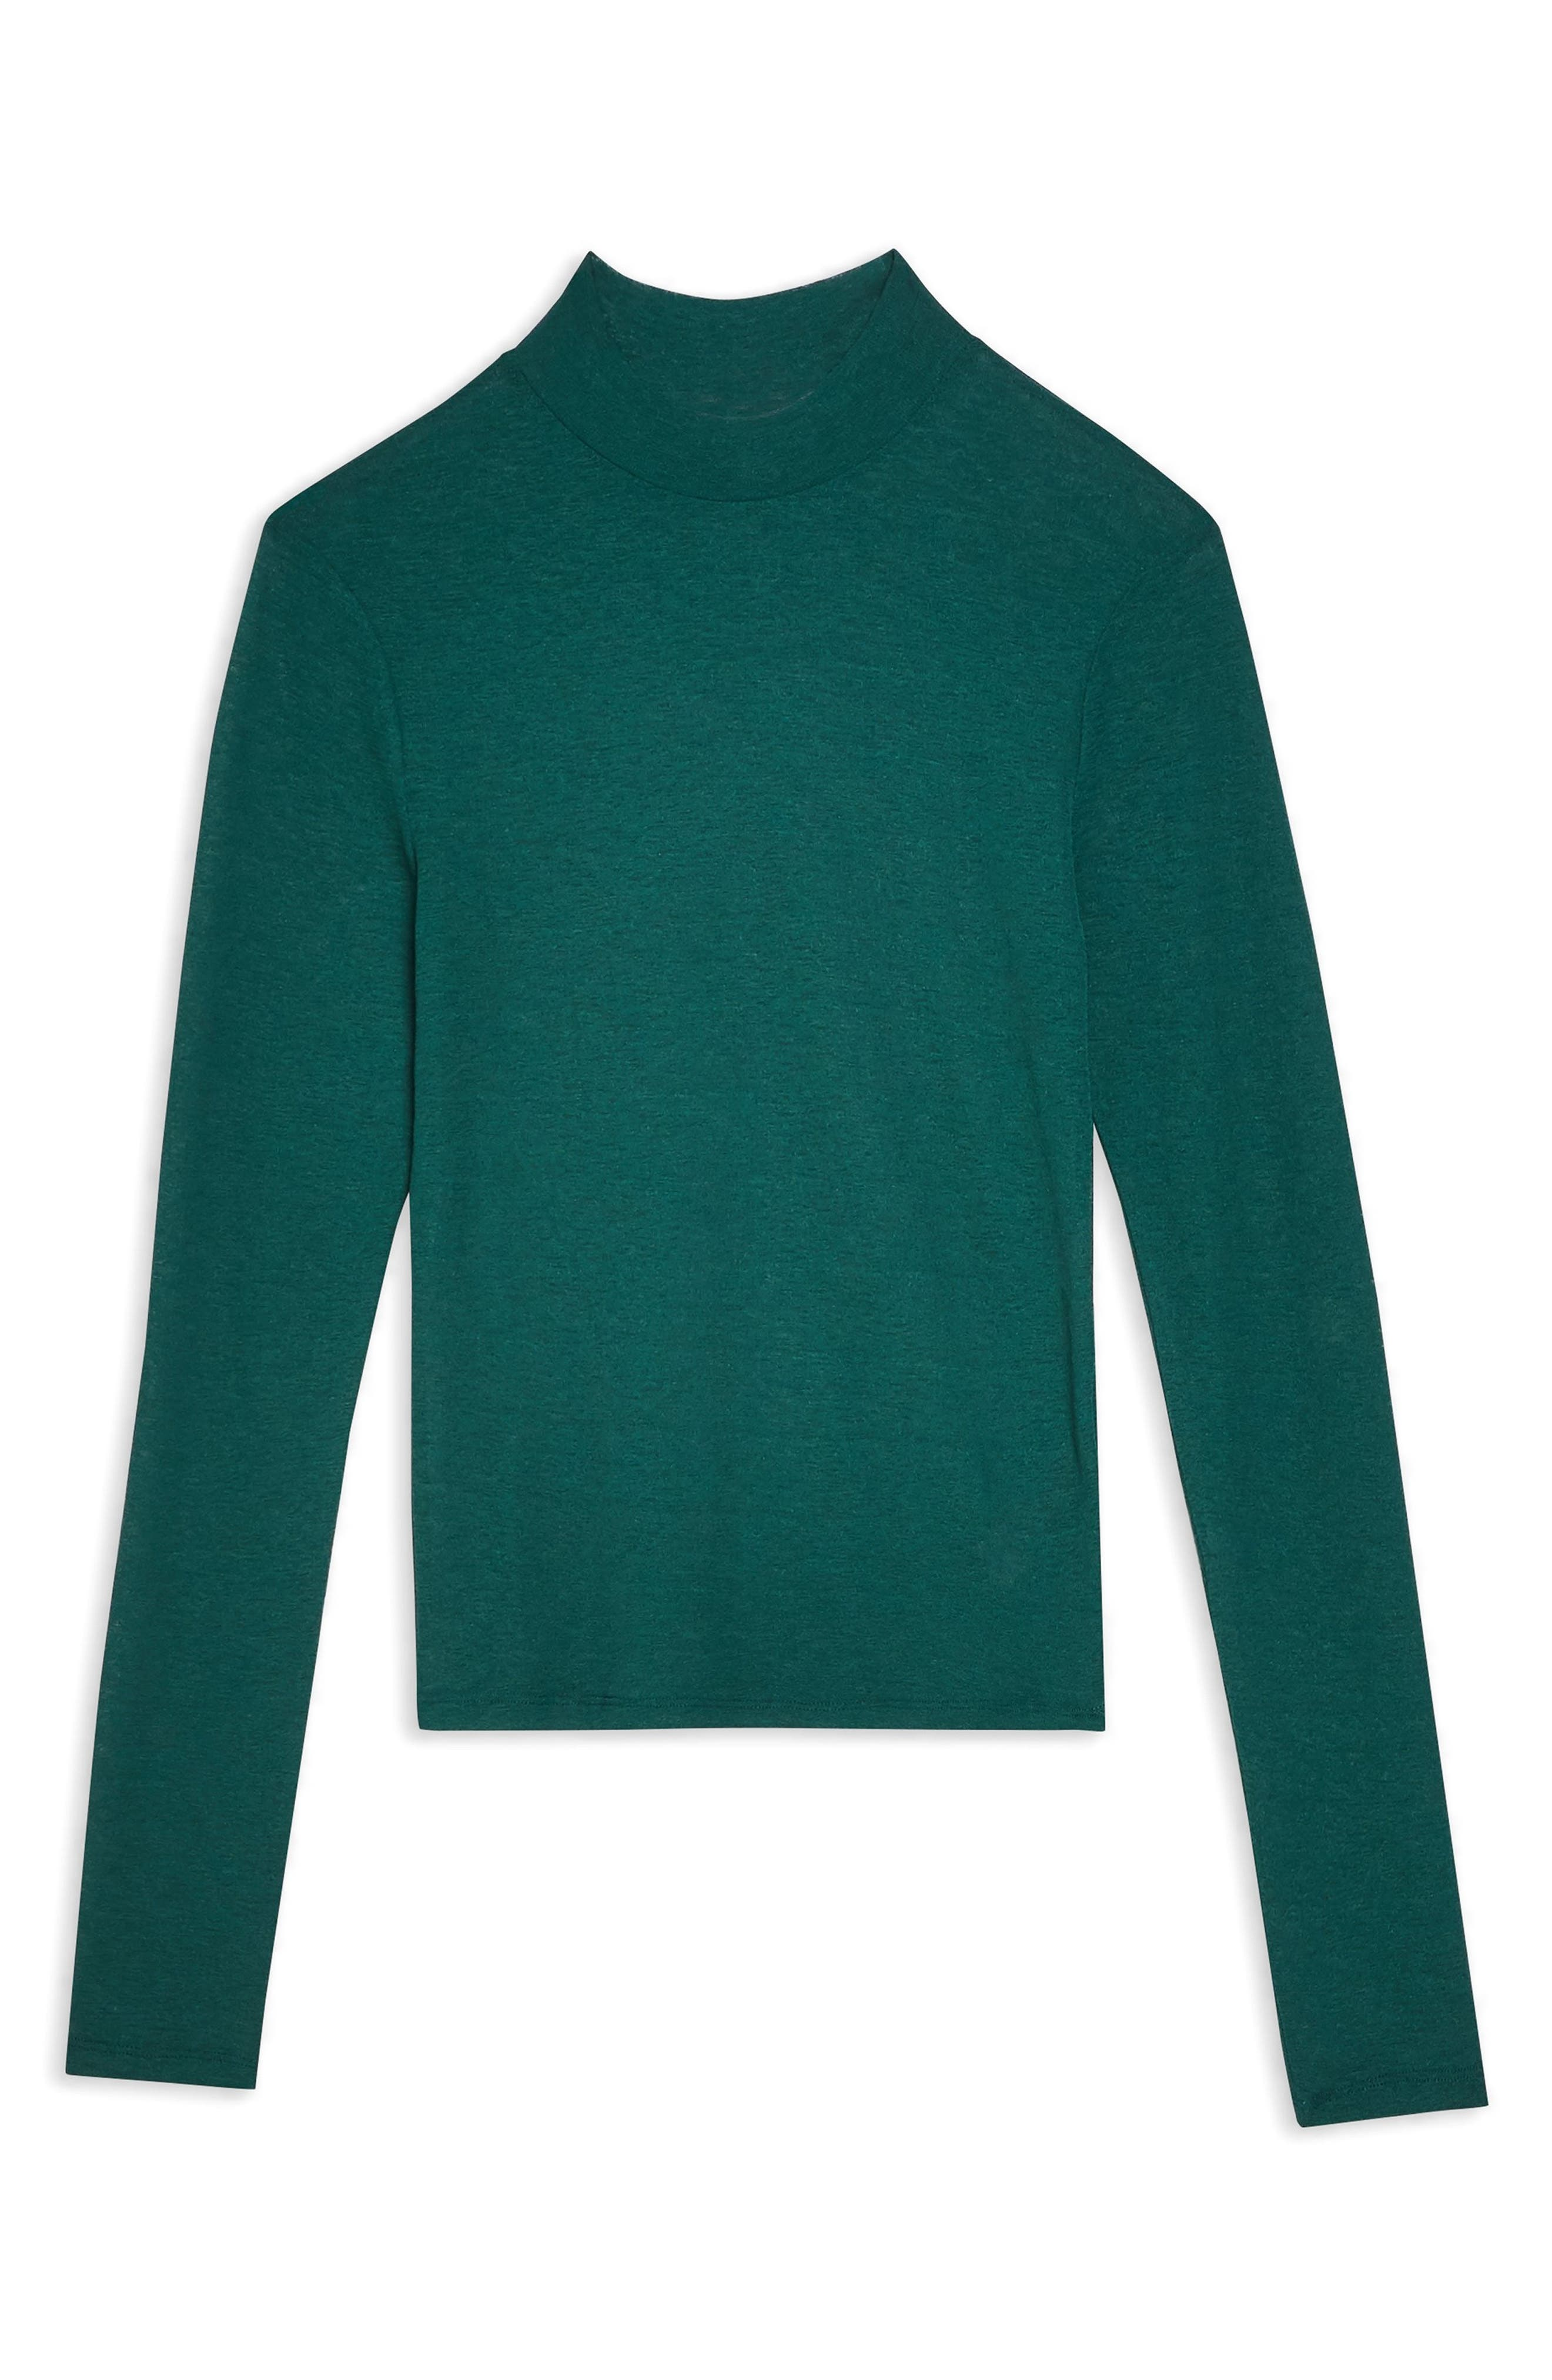 TOPSHOP,                             Solid Mock Neck Top,                             Alternate thumbnail 3, color,                             FOREST